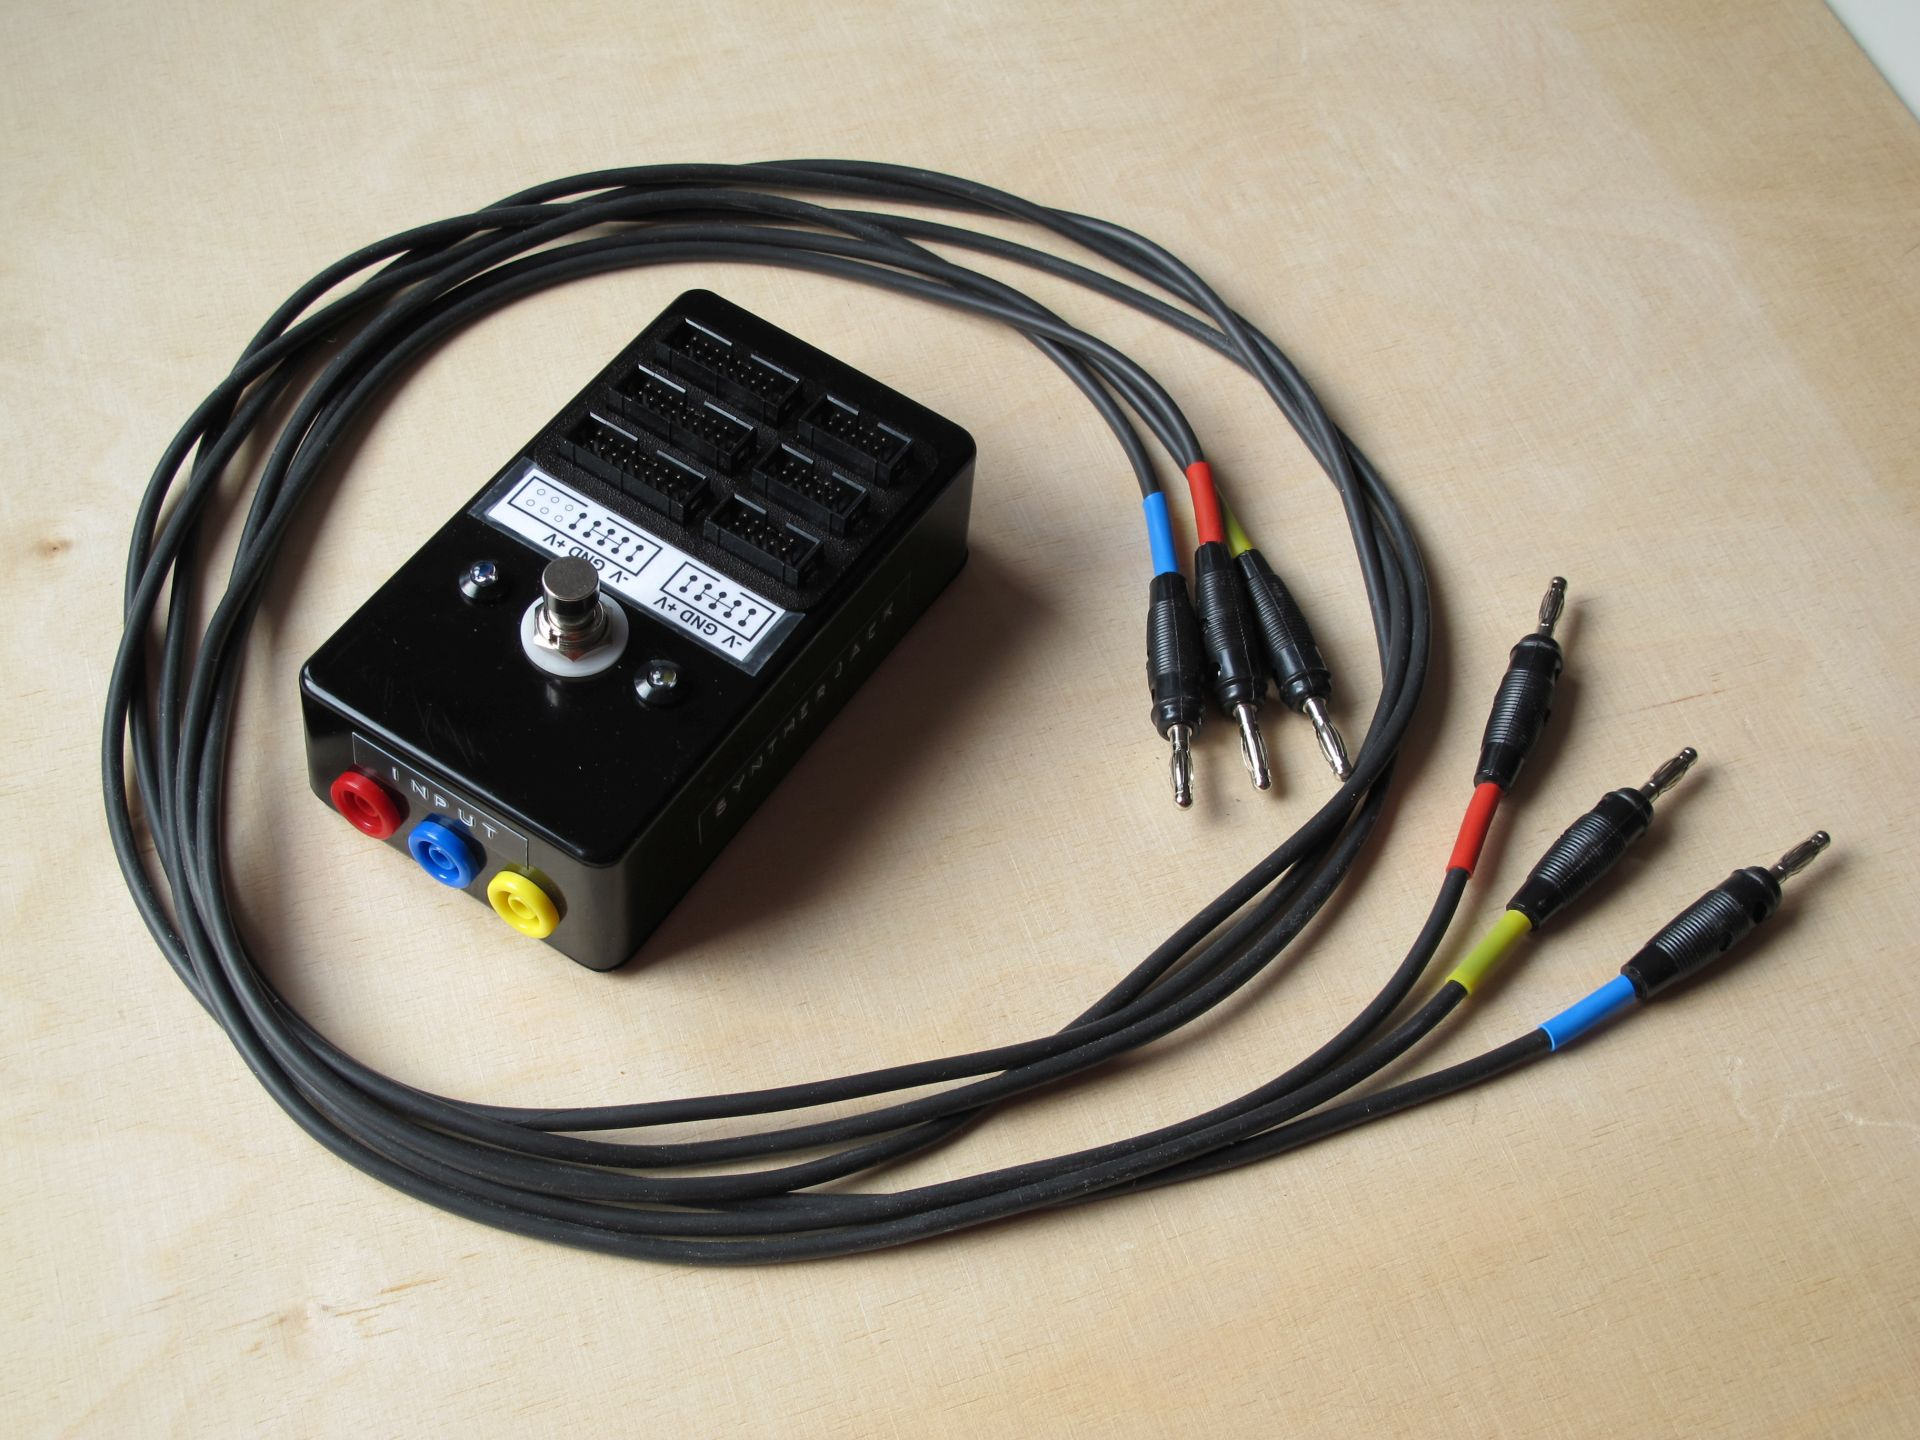 Photo of PSU extender with wires